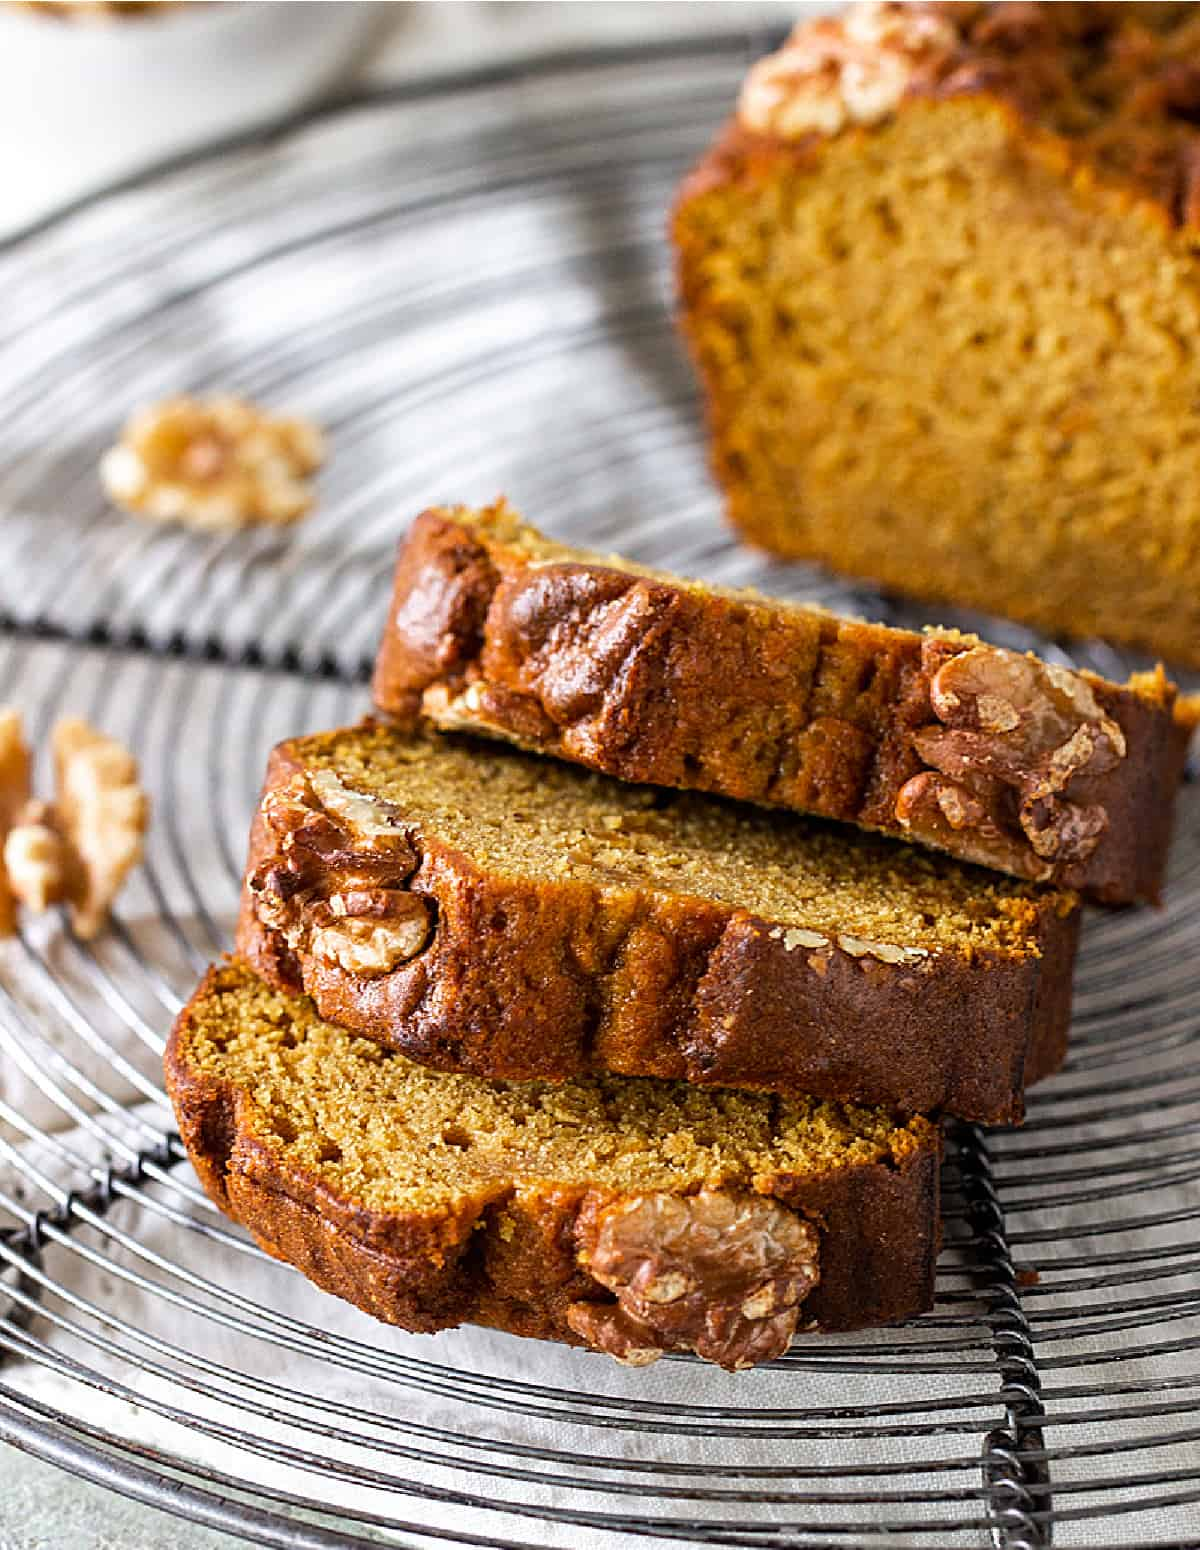 Three slices of golden pumpkin bread with walnuts, wire rack, loose walnut pieces, greyish surface